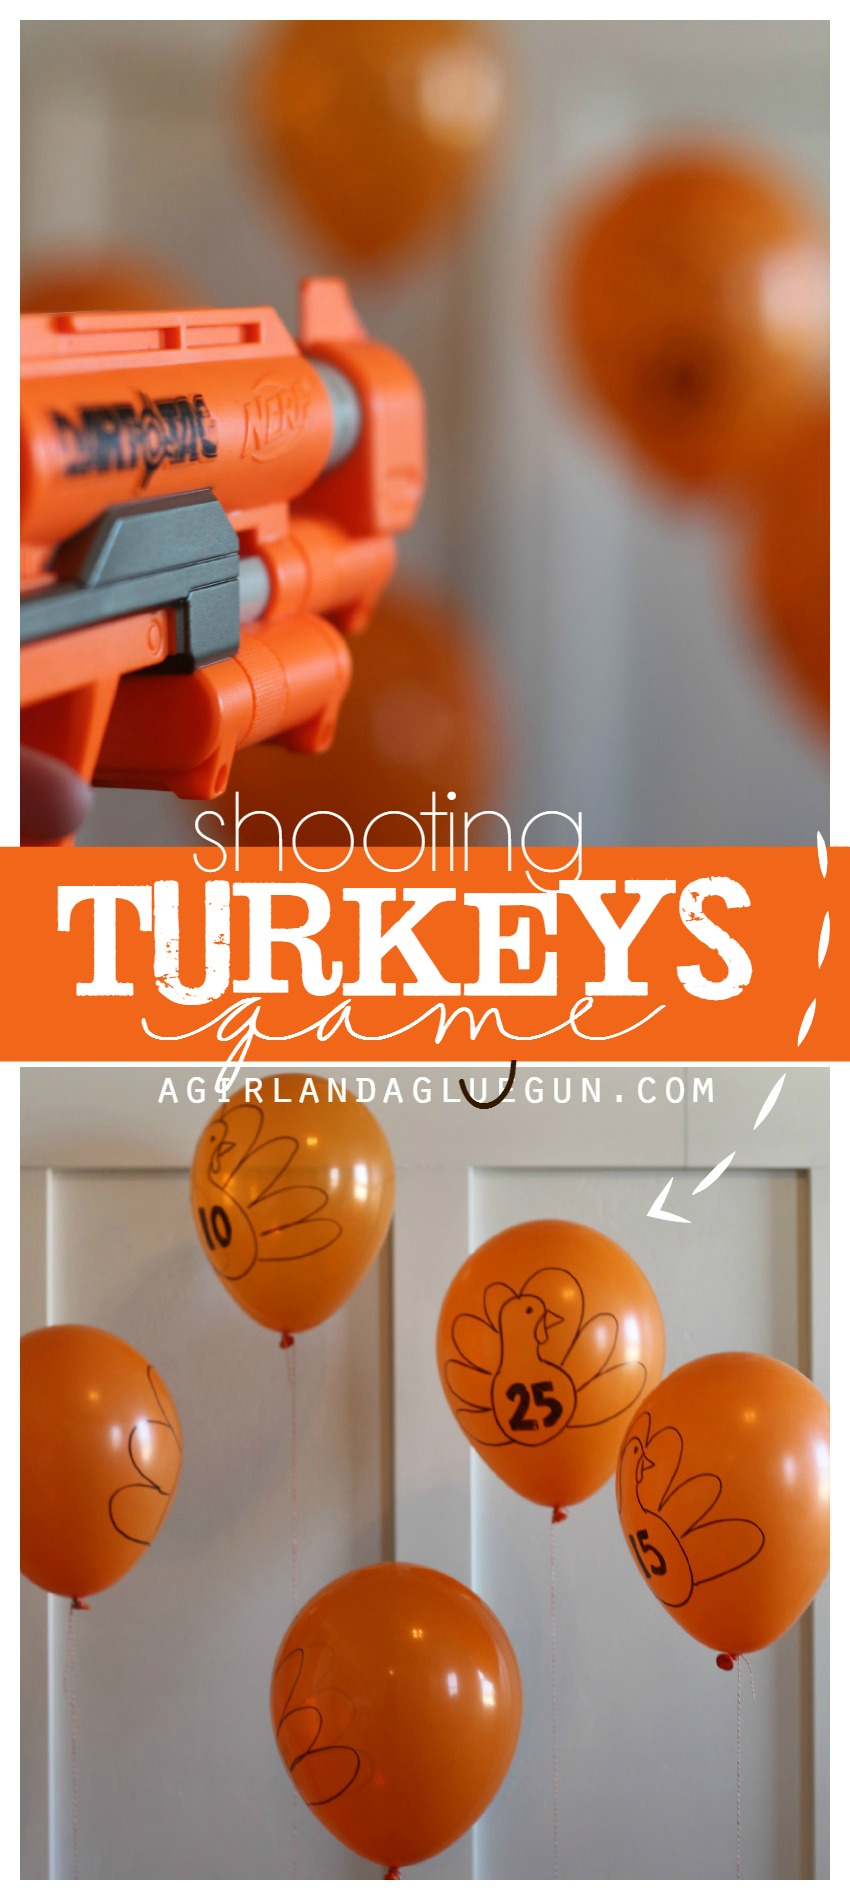 Need to add some excitement to your turkey day? Here are 8 fun thanksgiving family games for you and yours to make this year a memorable one! #thanksgivinggames #thanksgivingactivities #thanksgiving